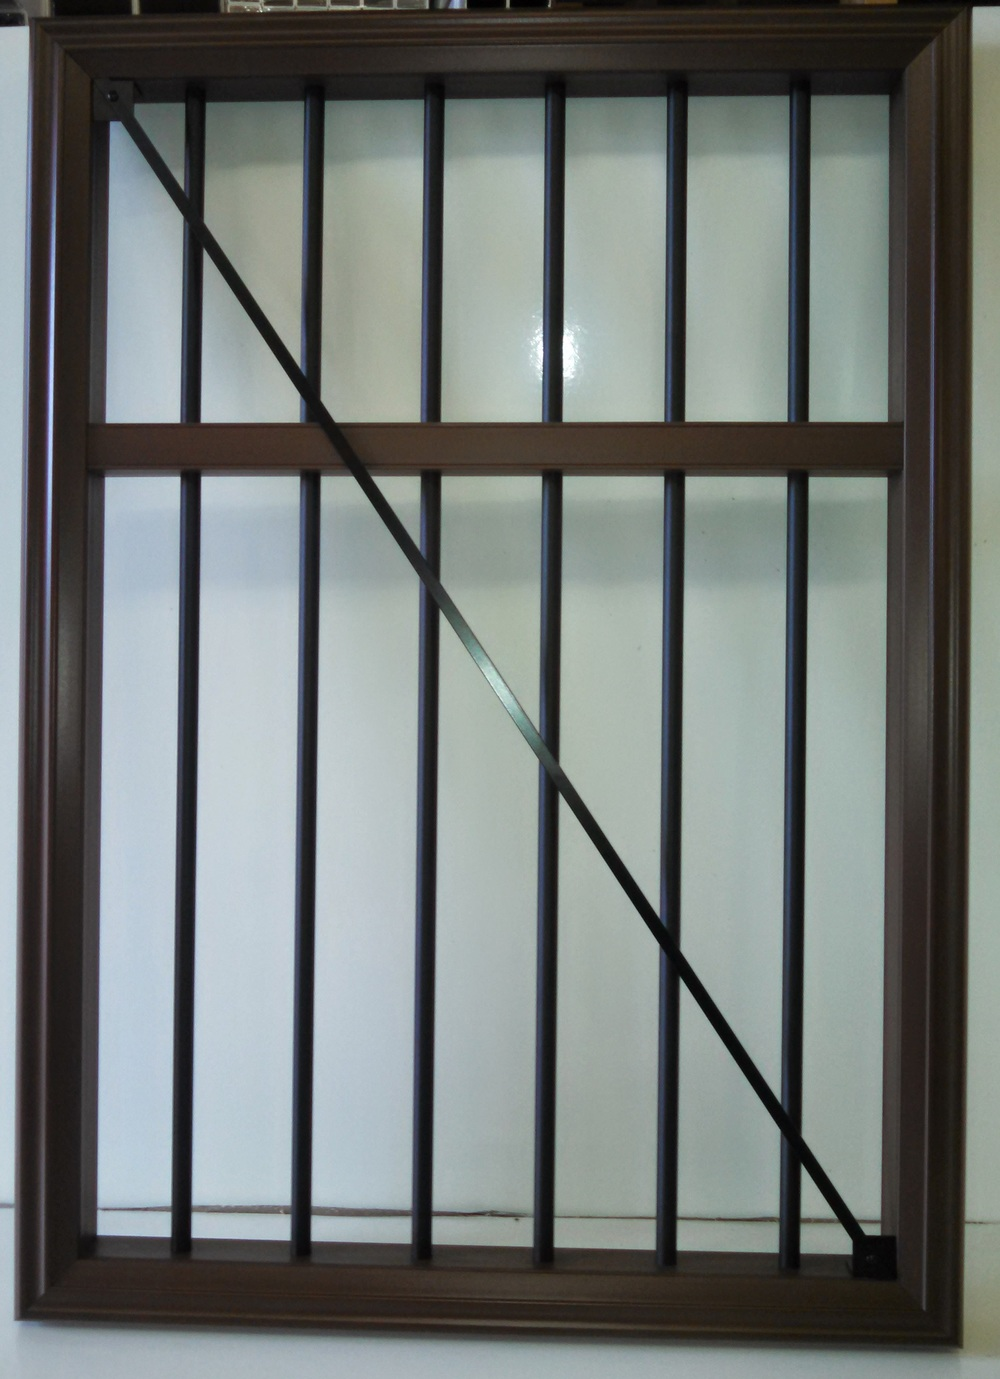 Trex Transcend gate with midrail and round aluminum balusters